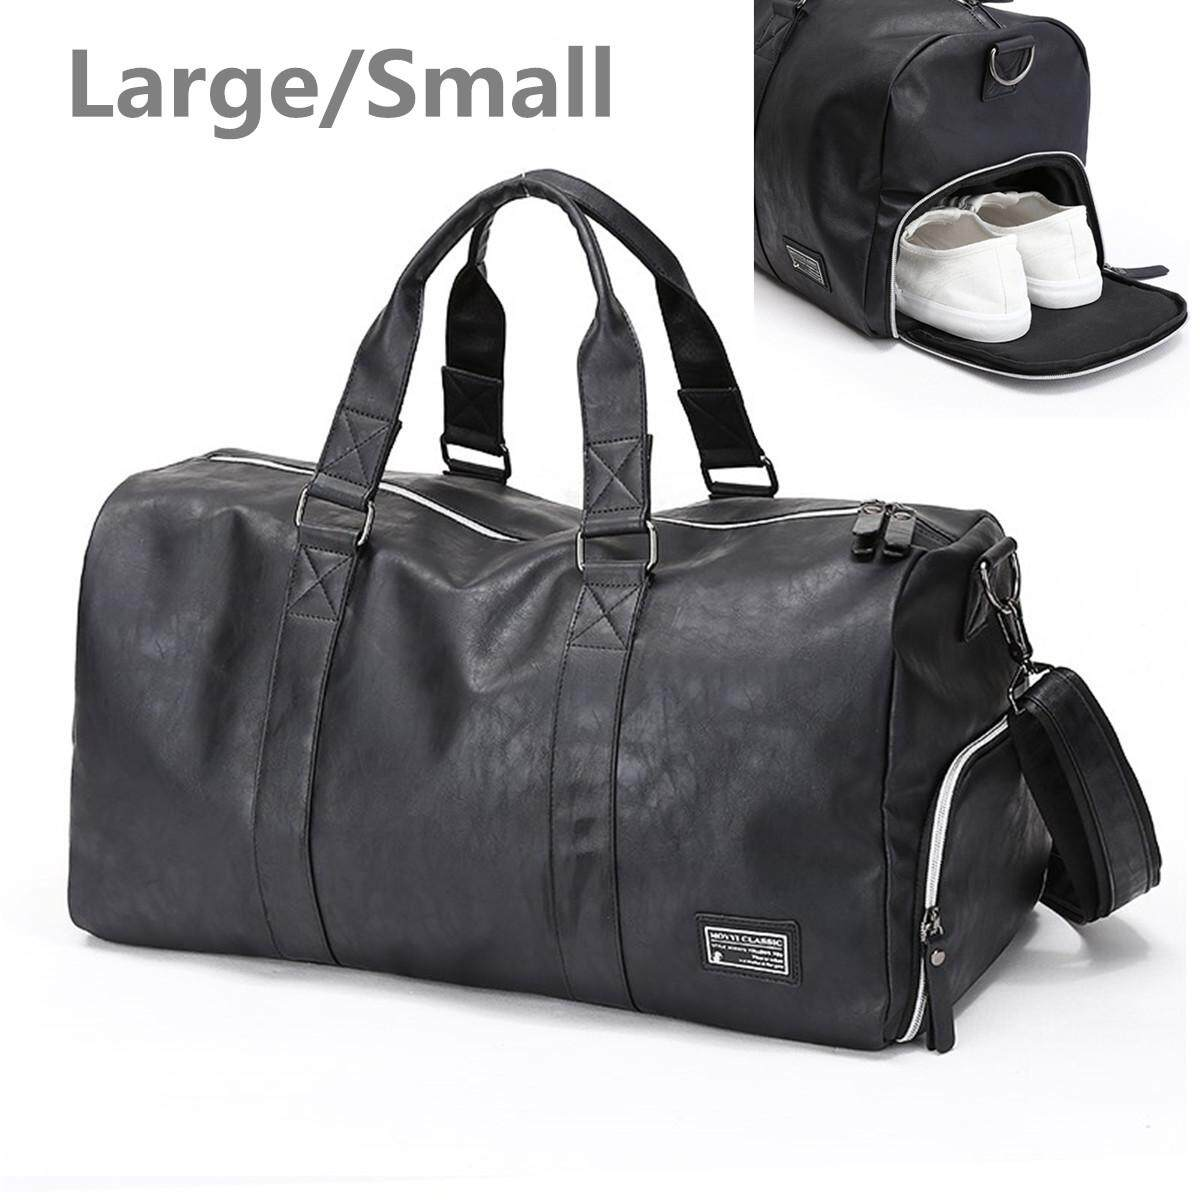 6b5ccedfd0 New business Mens Black Large Leather Travel Gym Bag Weekend Duffle Bag  Handbag  Small